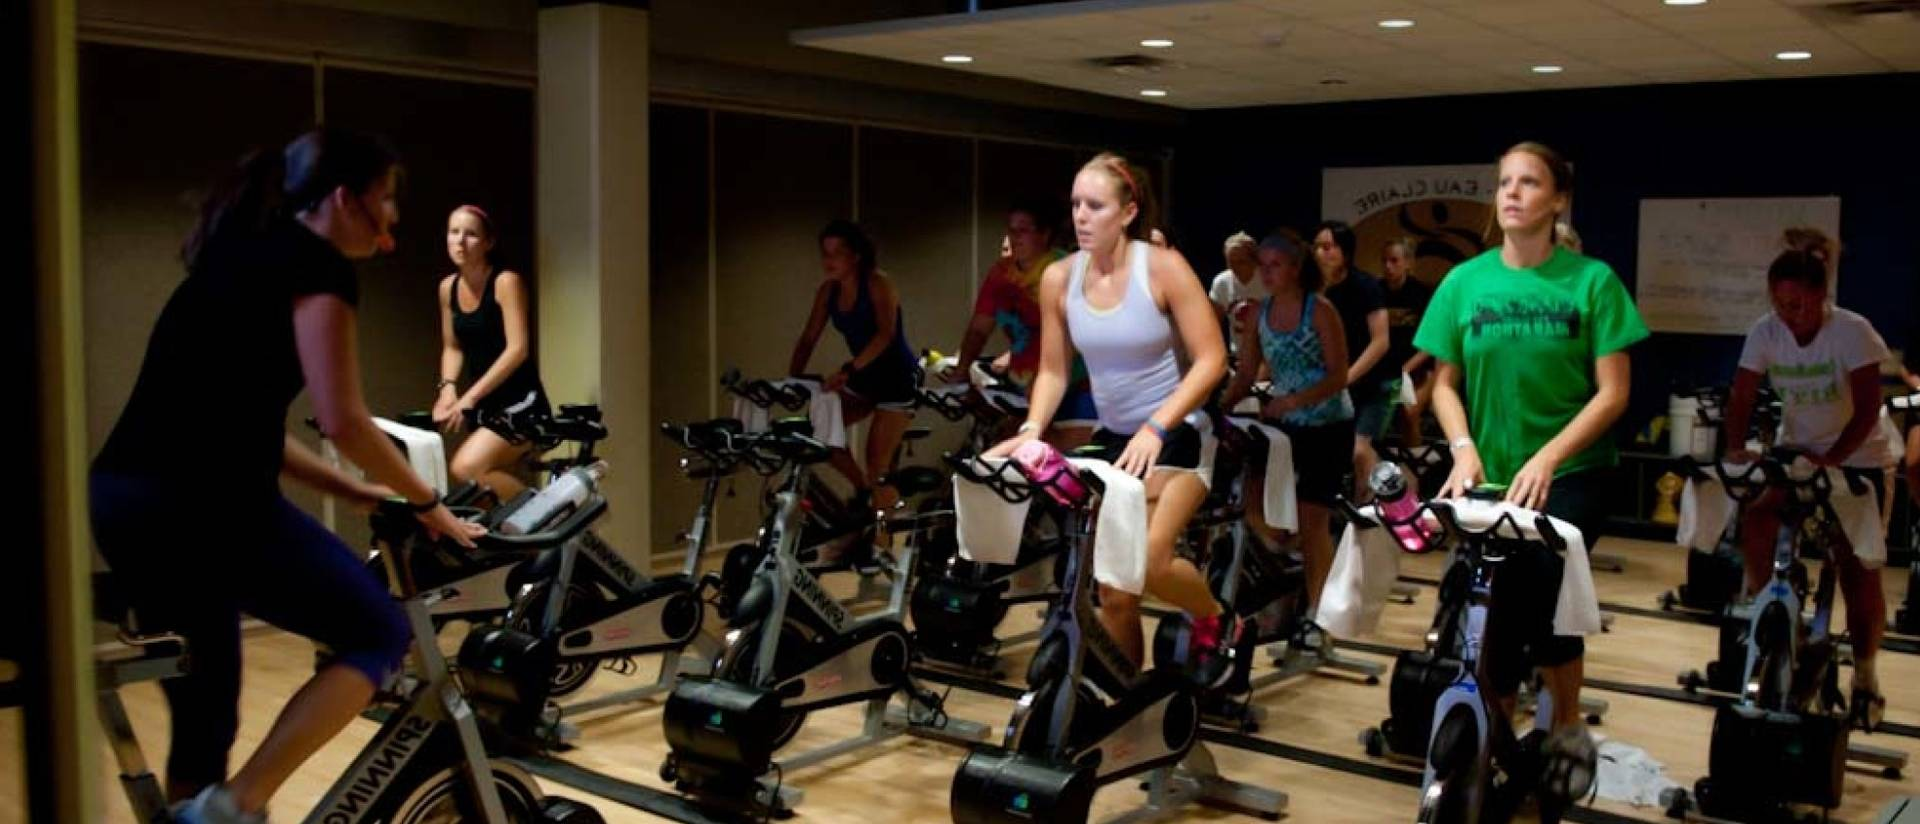 UWEC students in spinning class